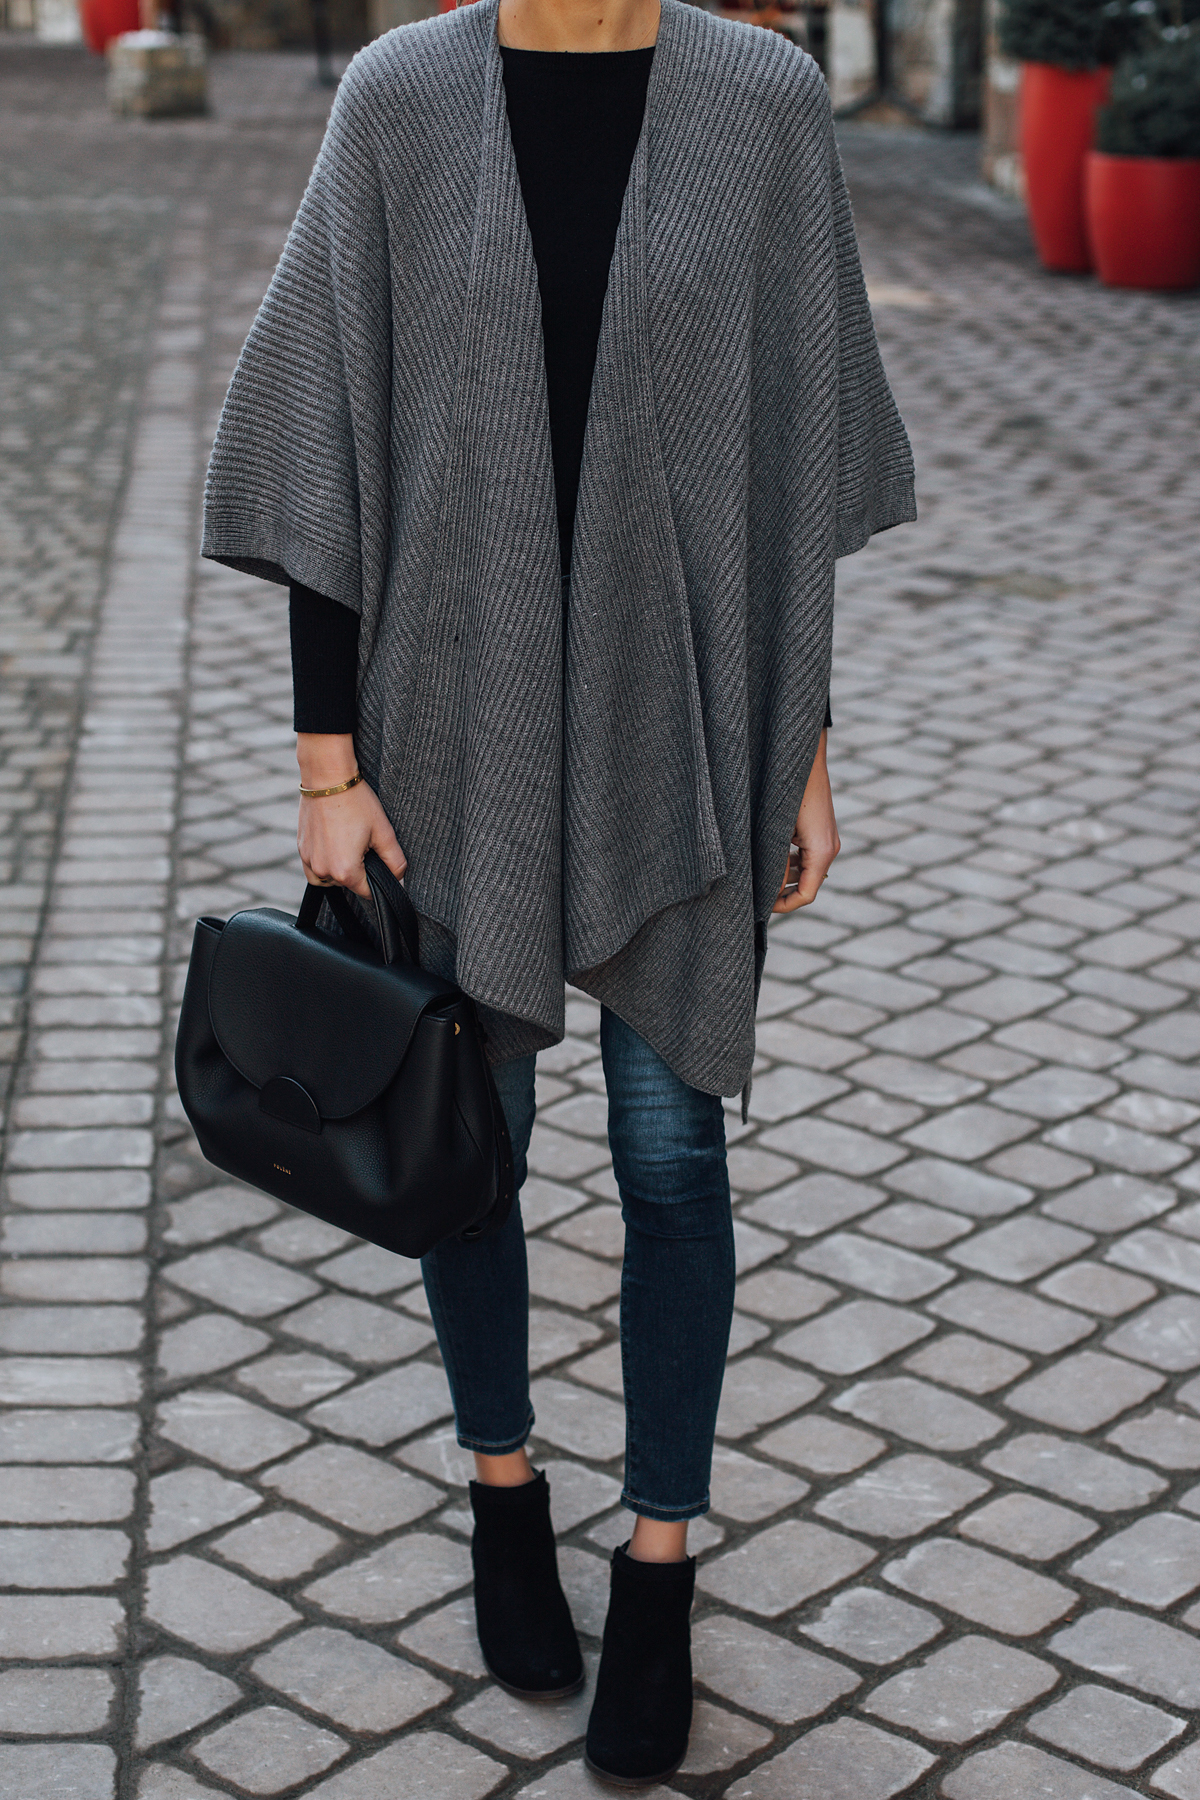 Woman Wearing Grey Sweater Poncho Black Top Denim Skinny Jeans Polene Black Handbag Black Booties Fashion Jackson San Diego Fashion Blogger Street Style